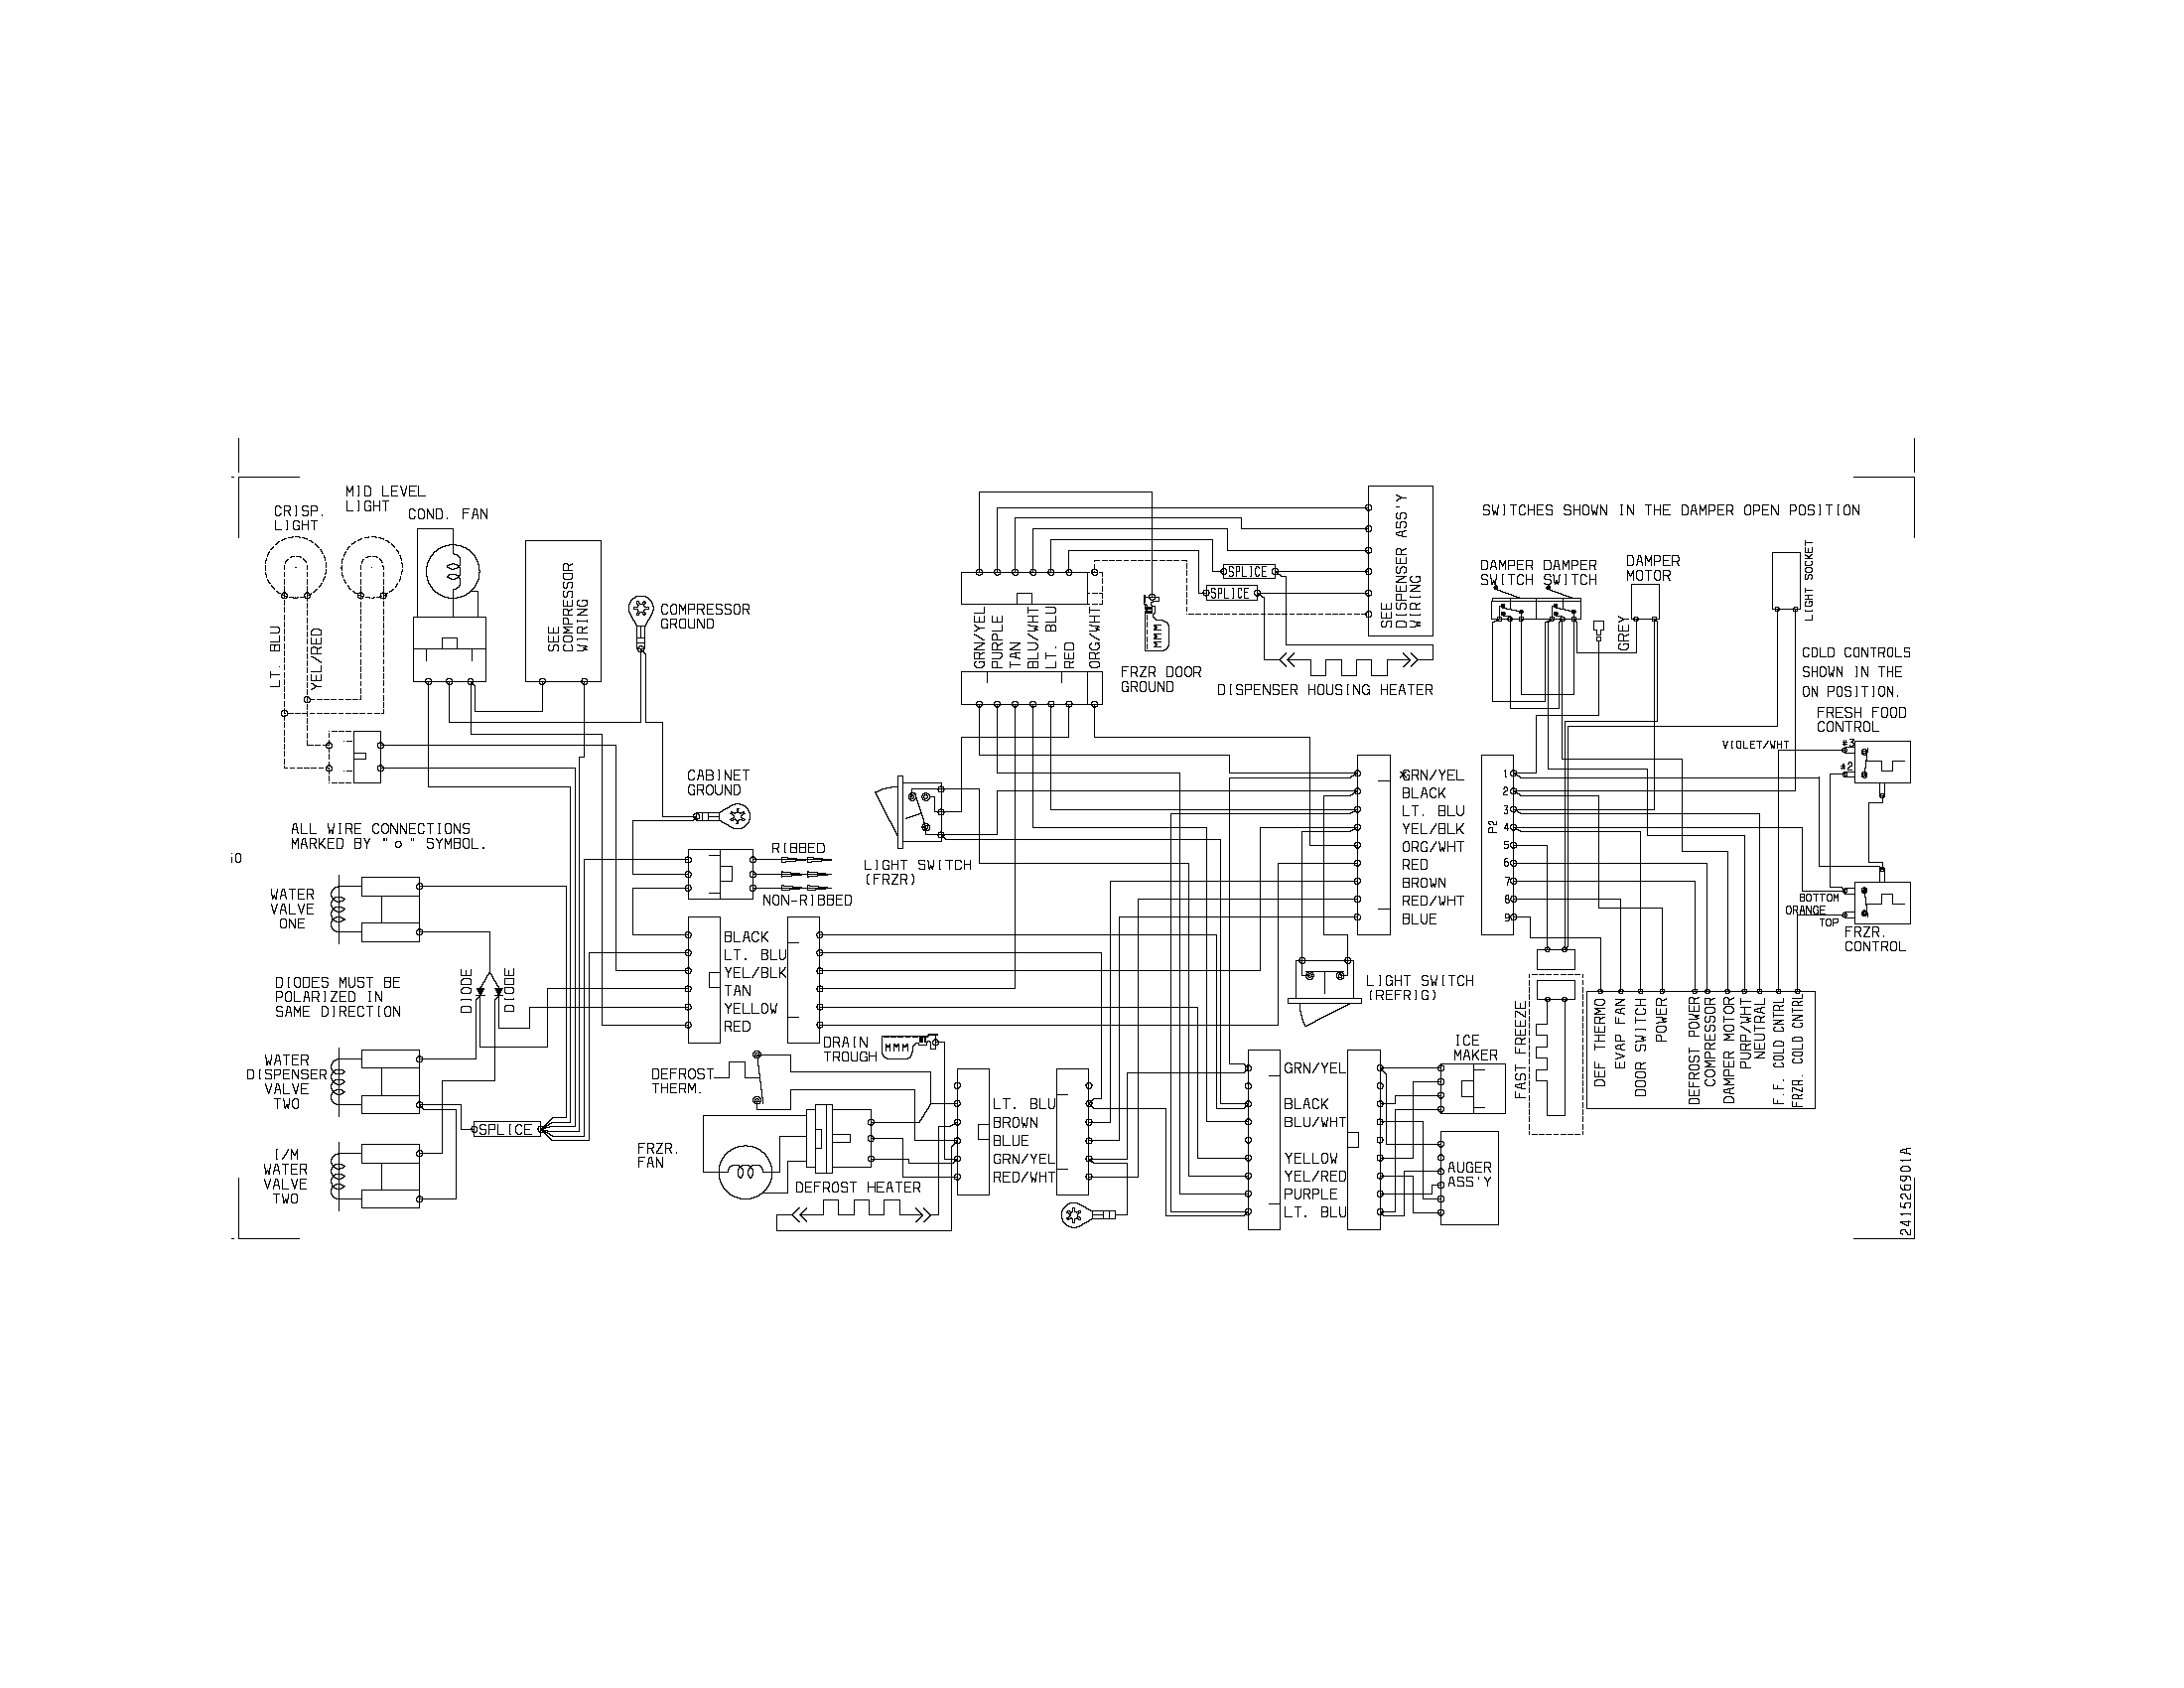 Freezer Wiring Schematic Sears 106